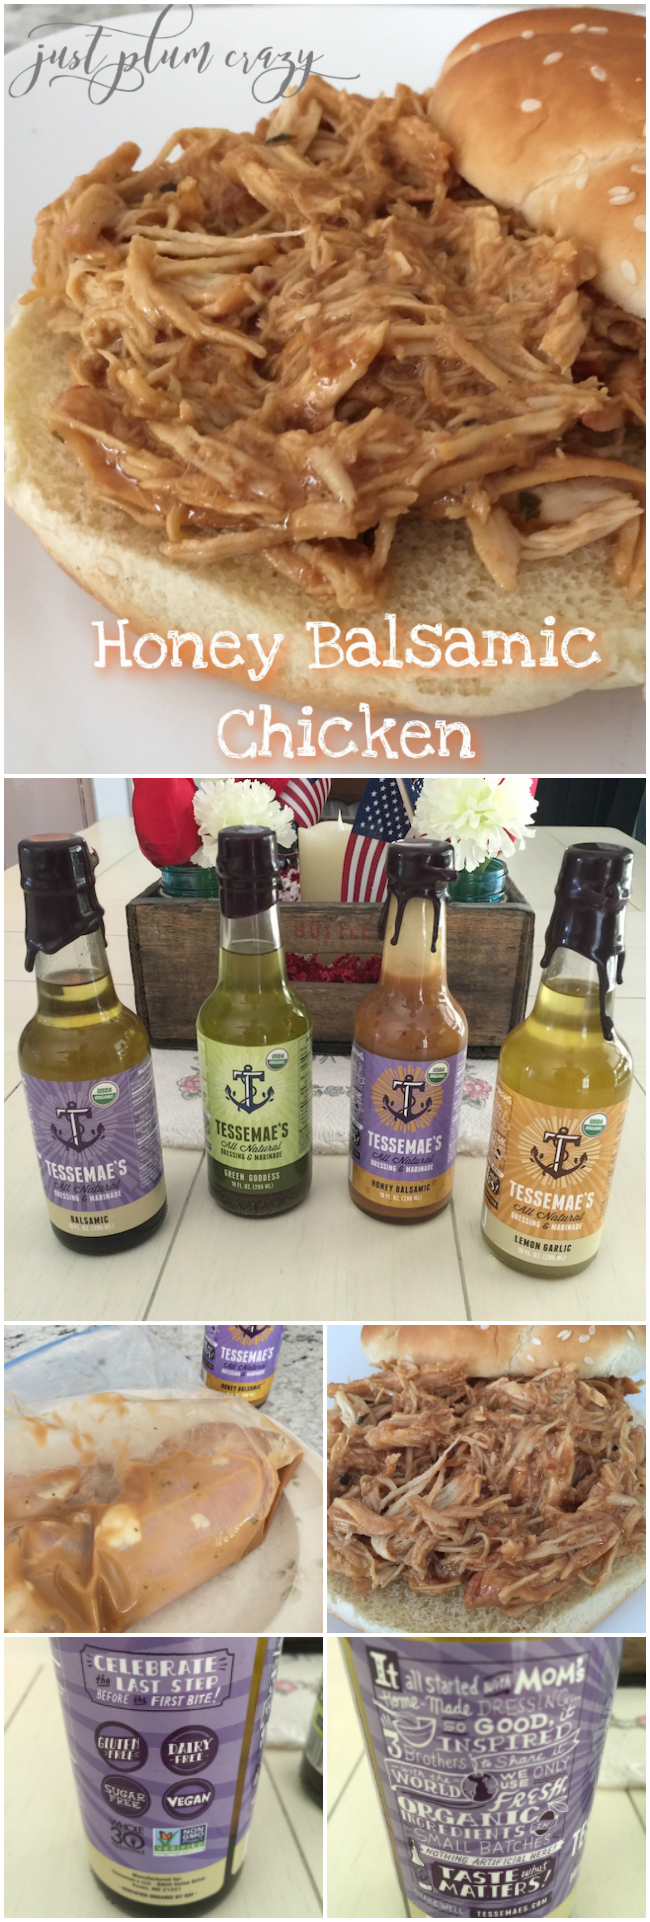 Honey Balsamic Chicken made with Tessemae's All Natural that are USDA organic, gluten free, non-gmo, vegan & contain no added sugar or xantham gum!